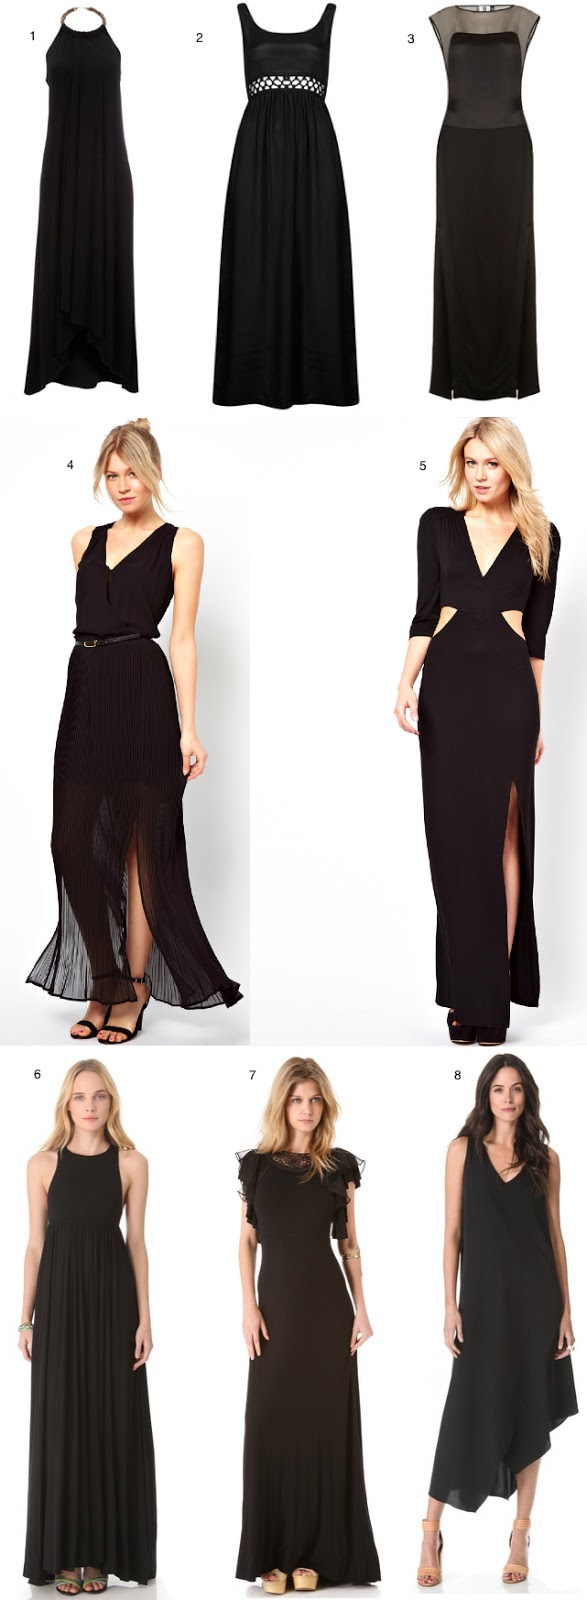 Collection Nordstroms Black Dresses Pictures - Watch Out, There\'s ...